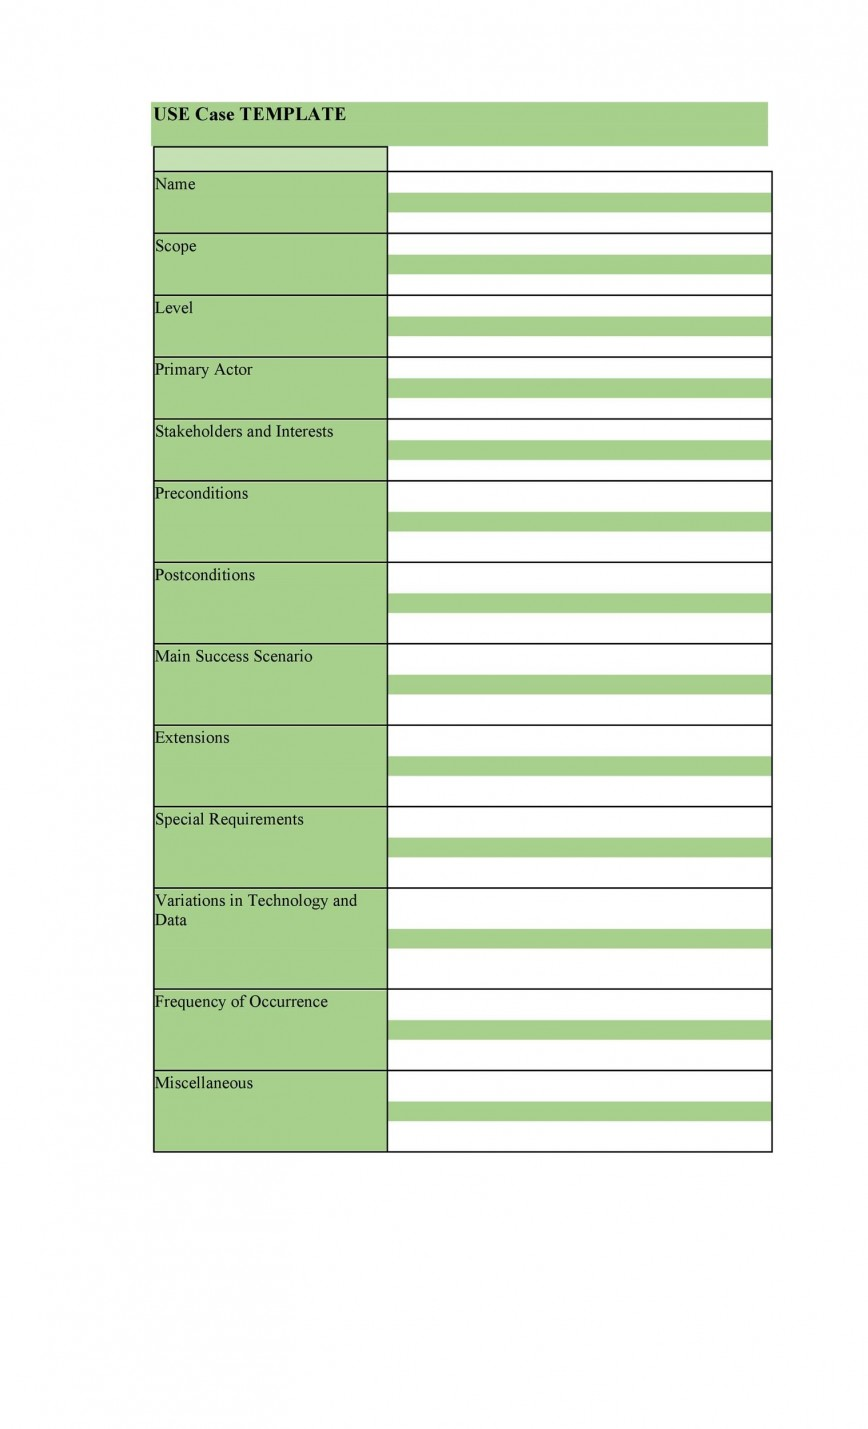 006 Awesome Use Case Template Word Idea  Doc Test868